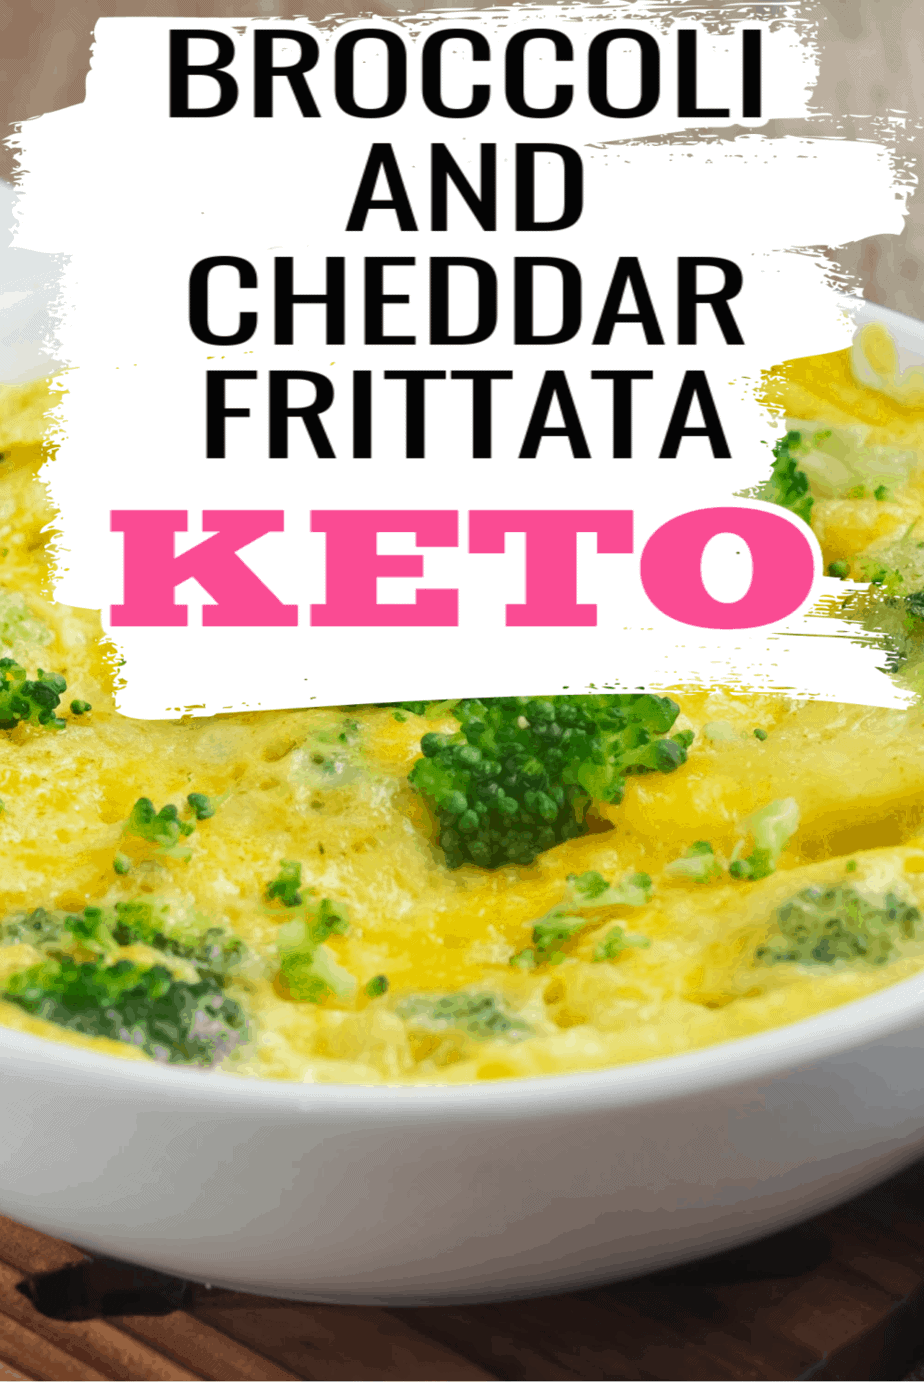 Keto Broccoli and Cheddar Frittata Recipe